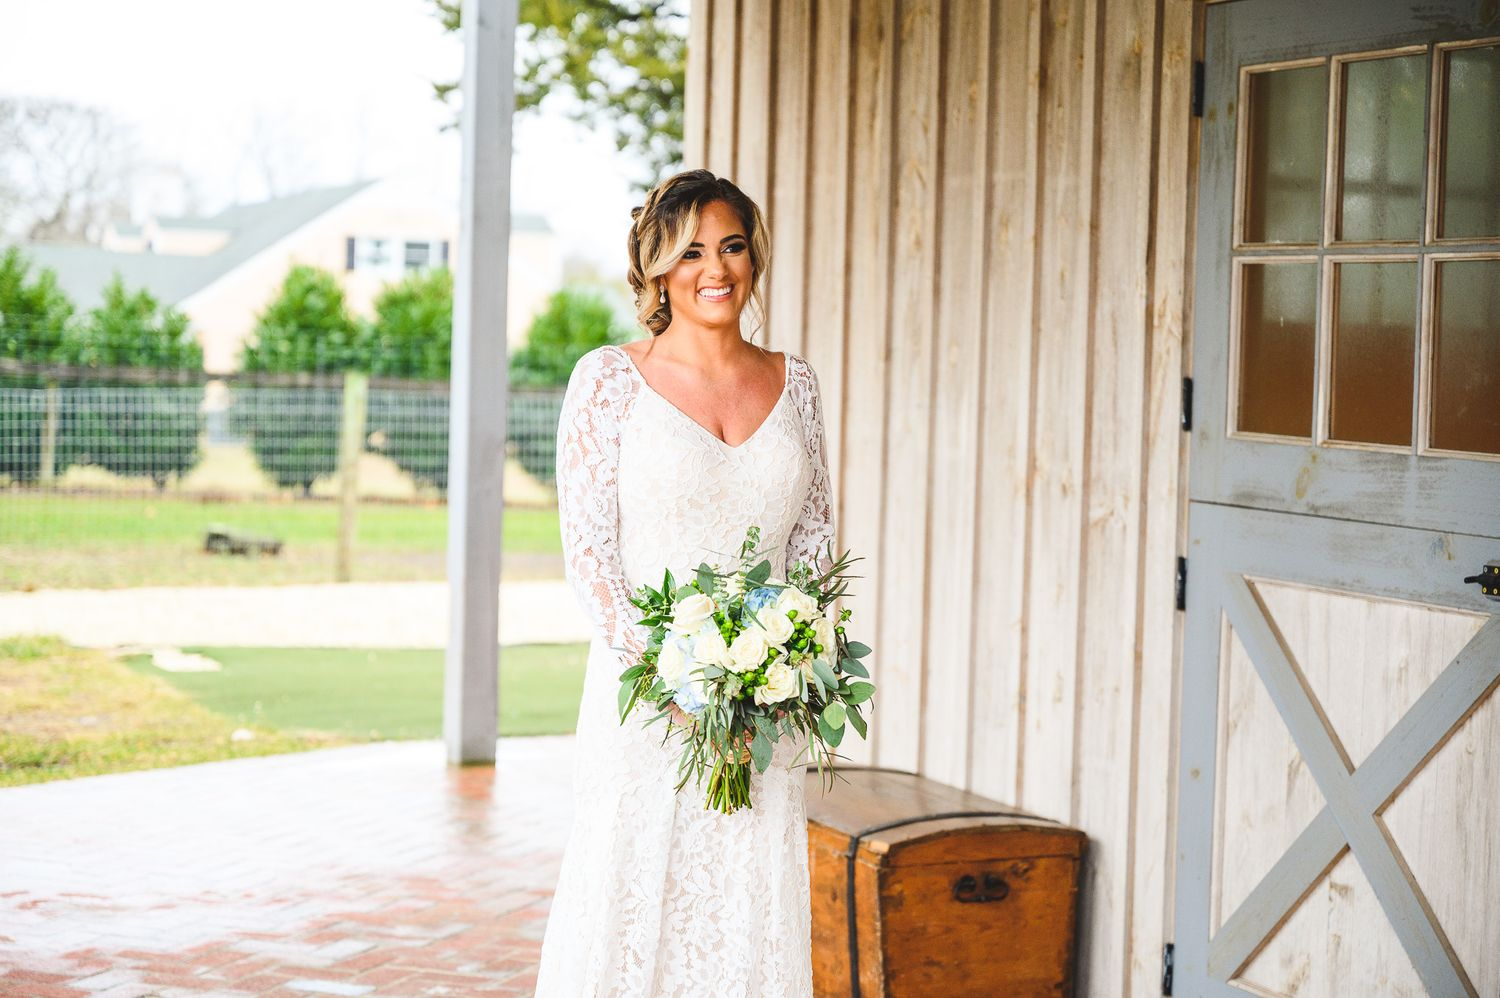 bride smiling in white wedding dress during first look